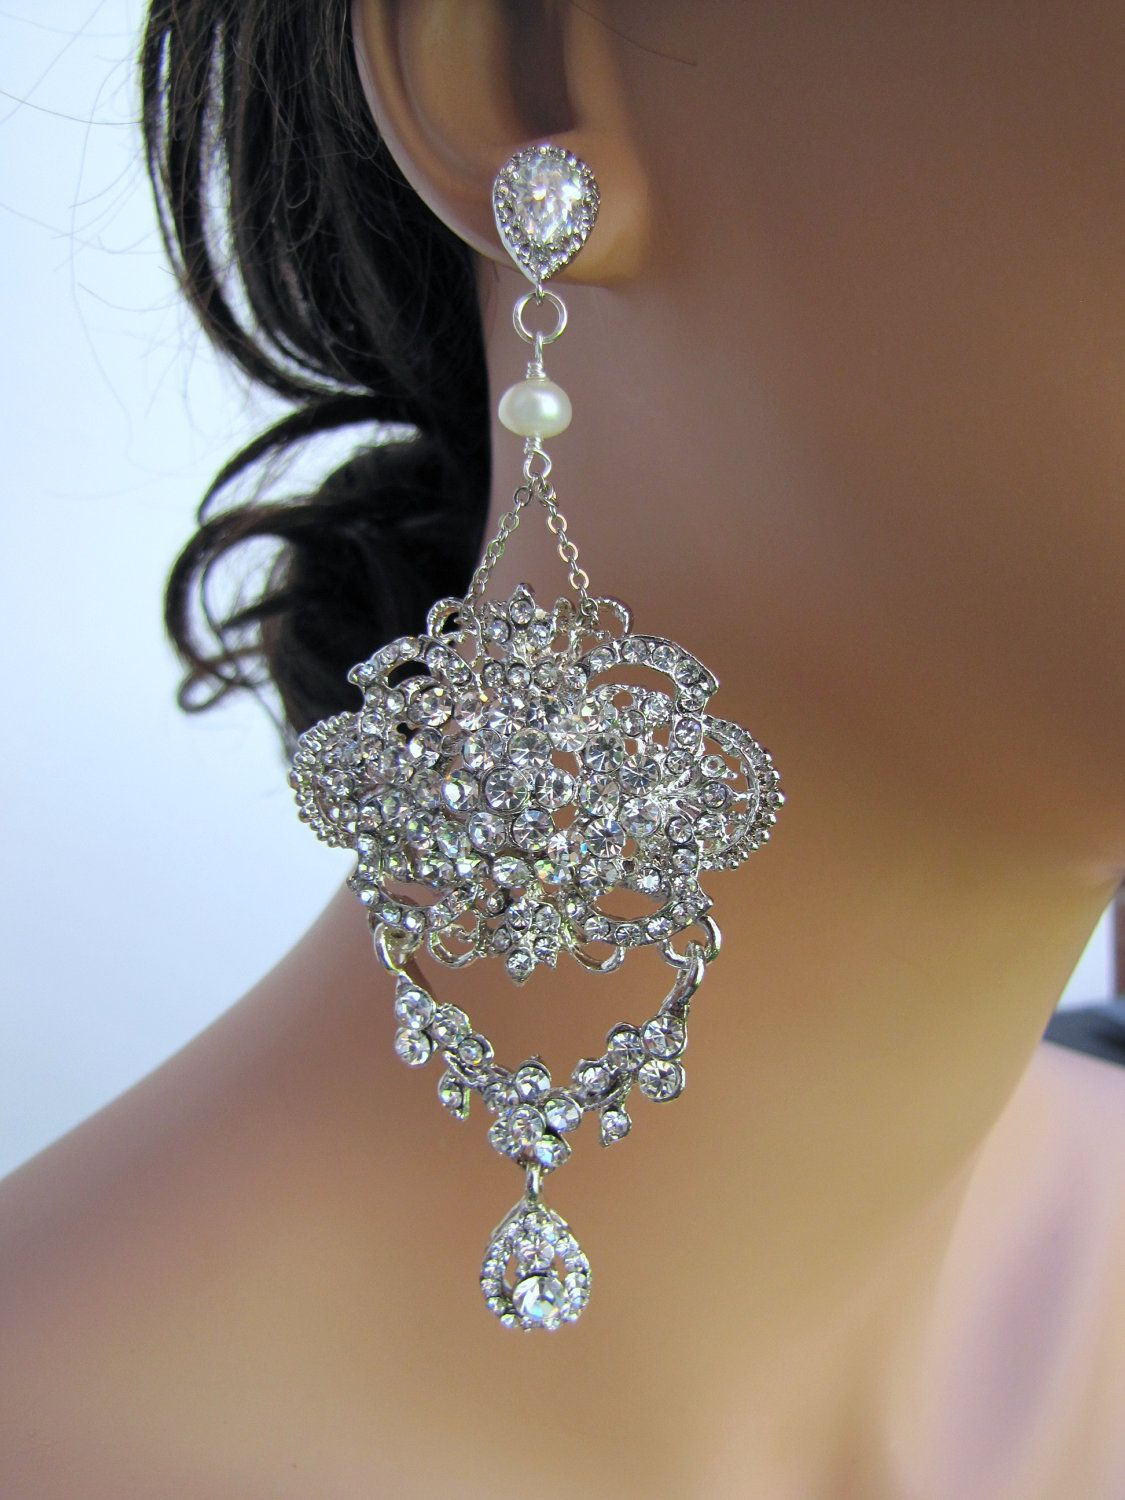 Bridal Chandelier Earrings Wedding Statement For Brides Large Dangle Rhinestones Cz Sterling Silver Posts Chelsea